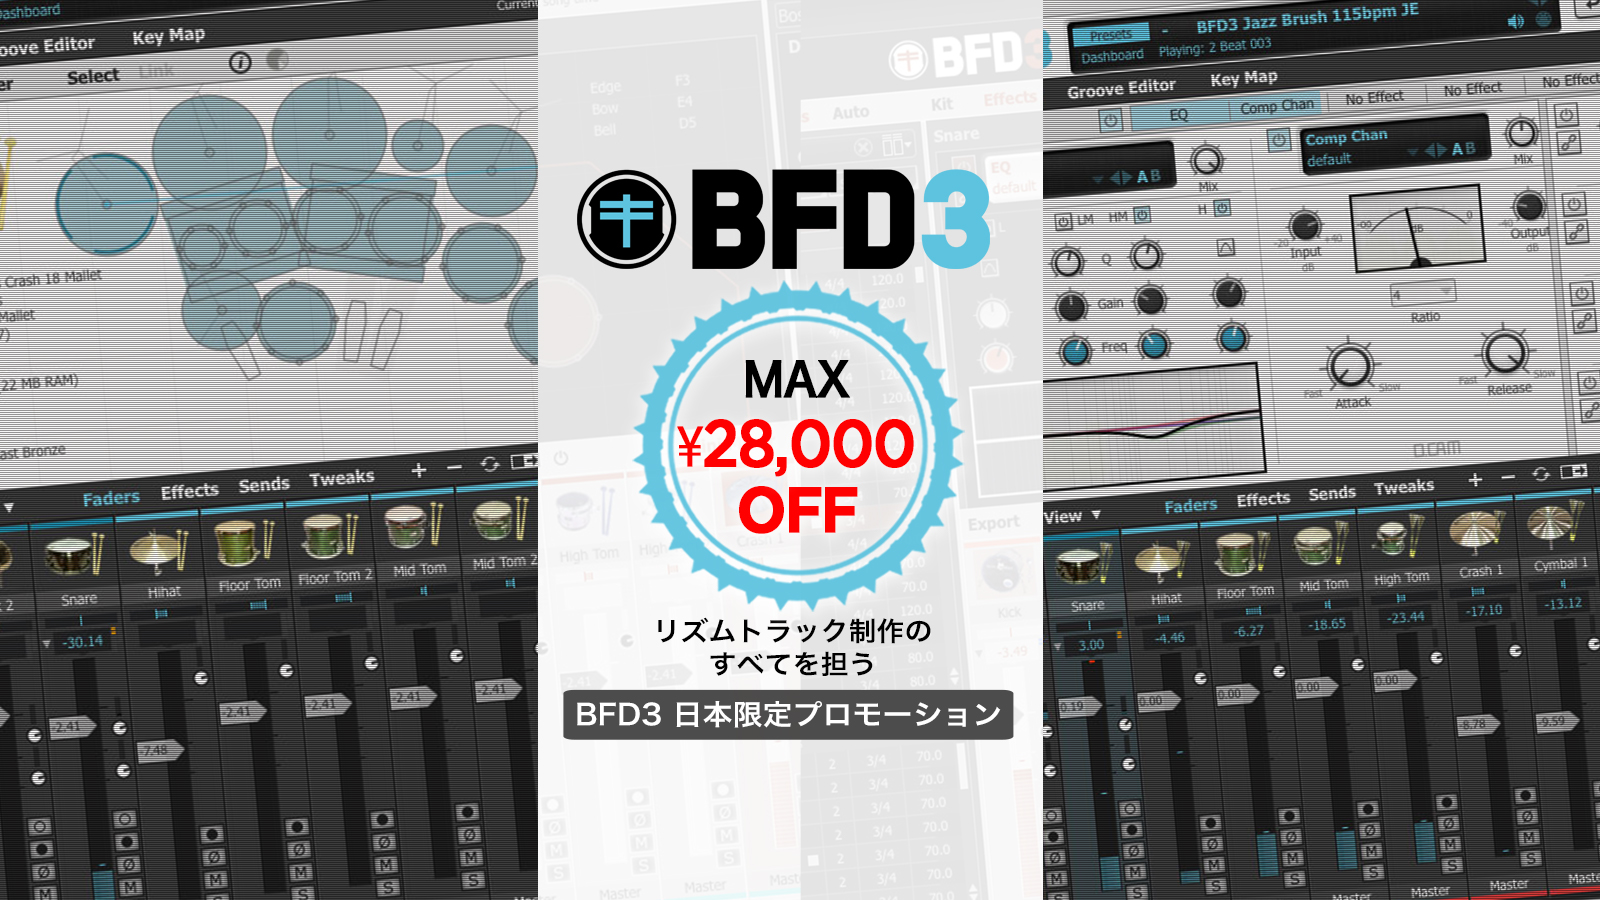 BFD3が50%超OFF!日本限定BFD3プロモーション